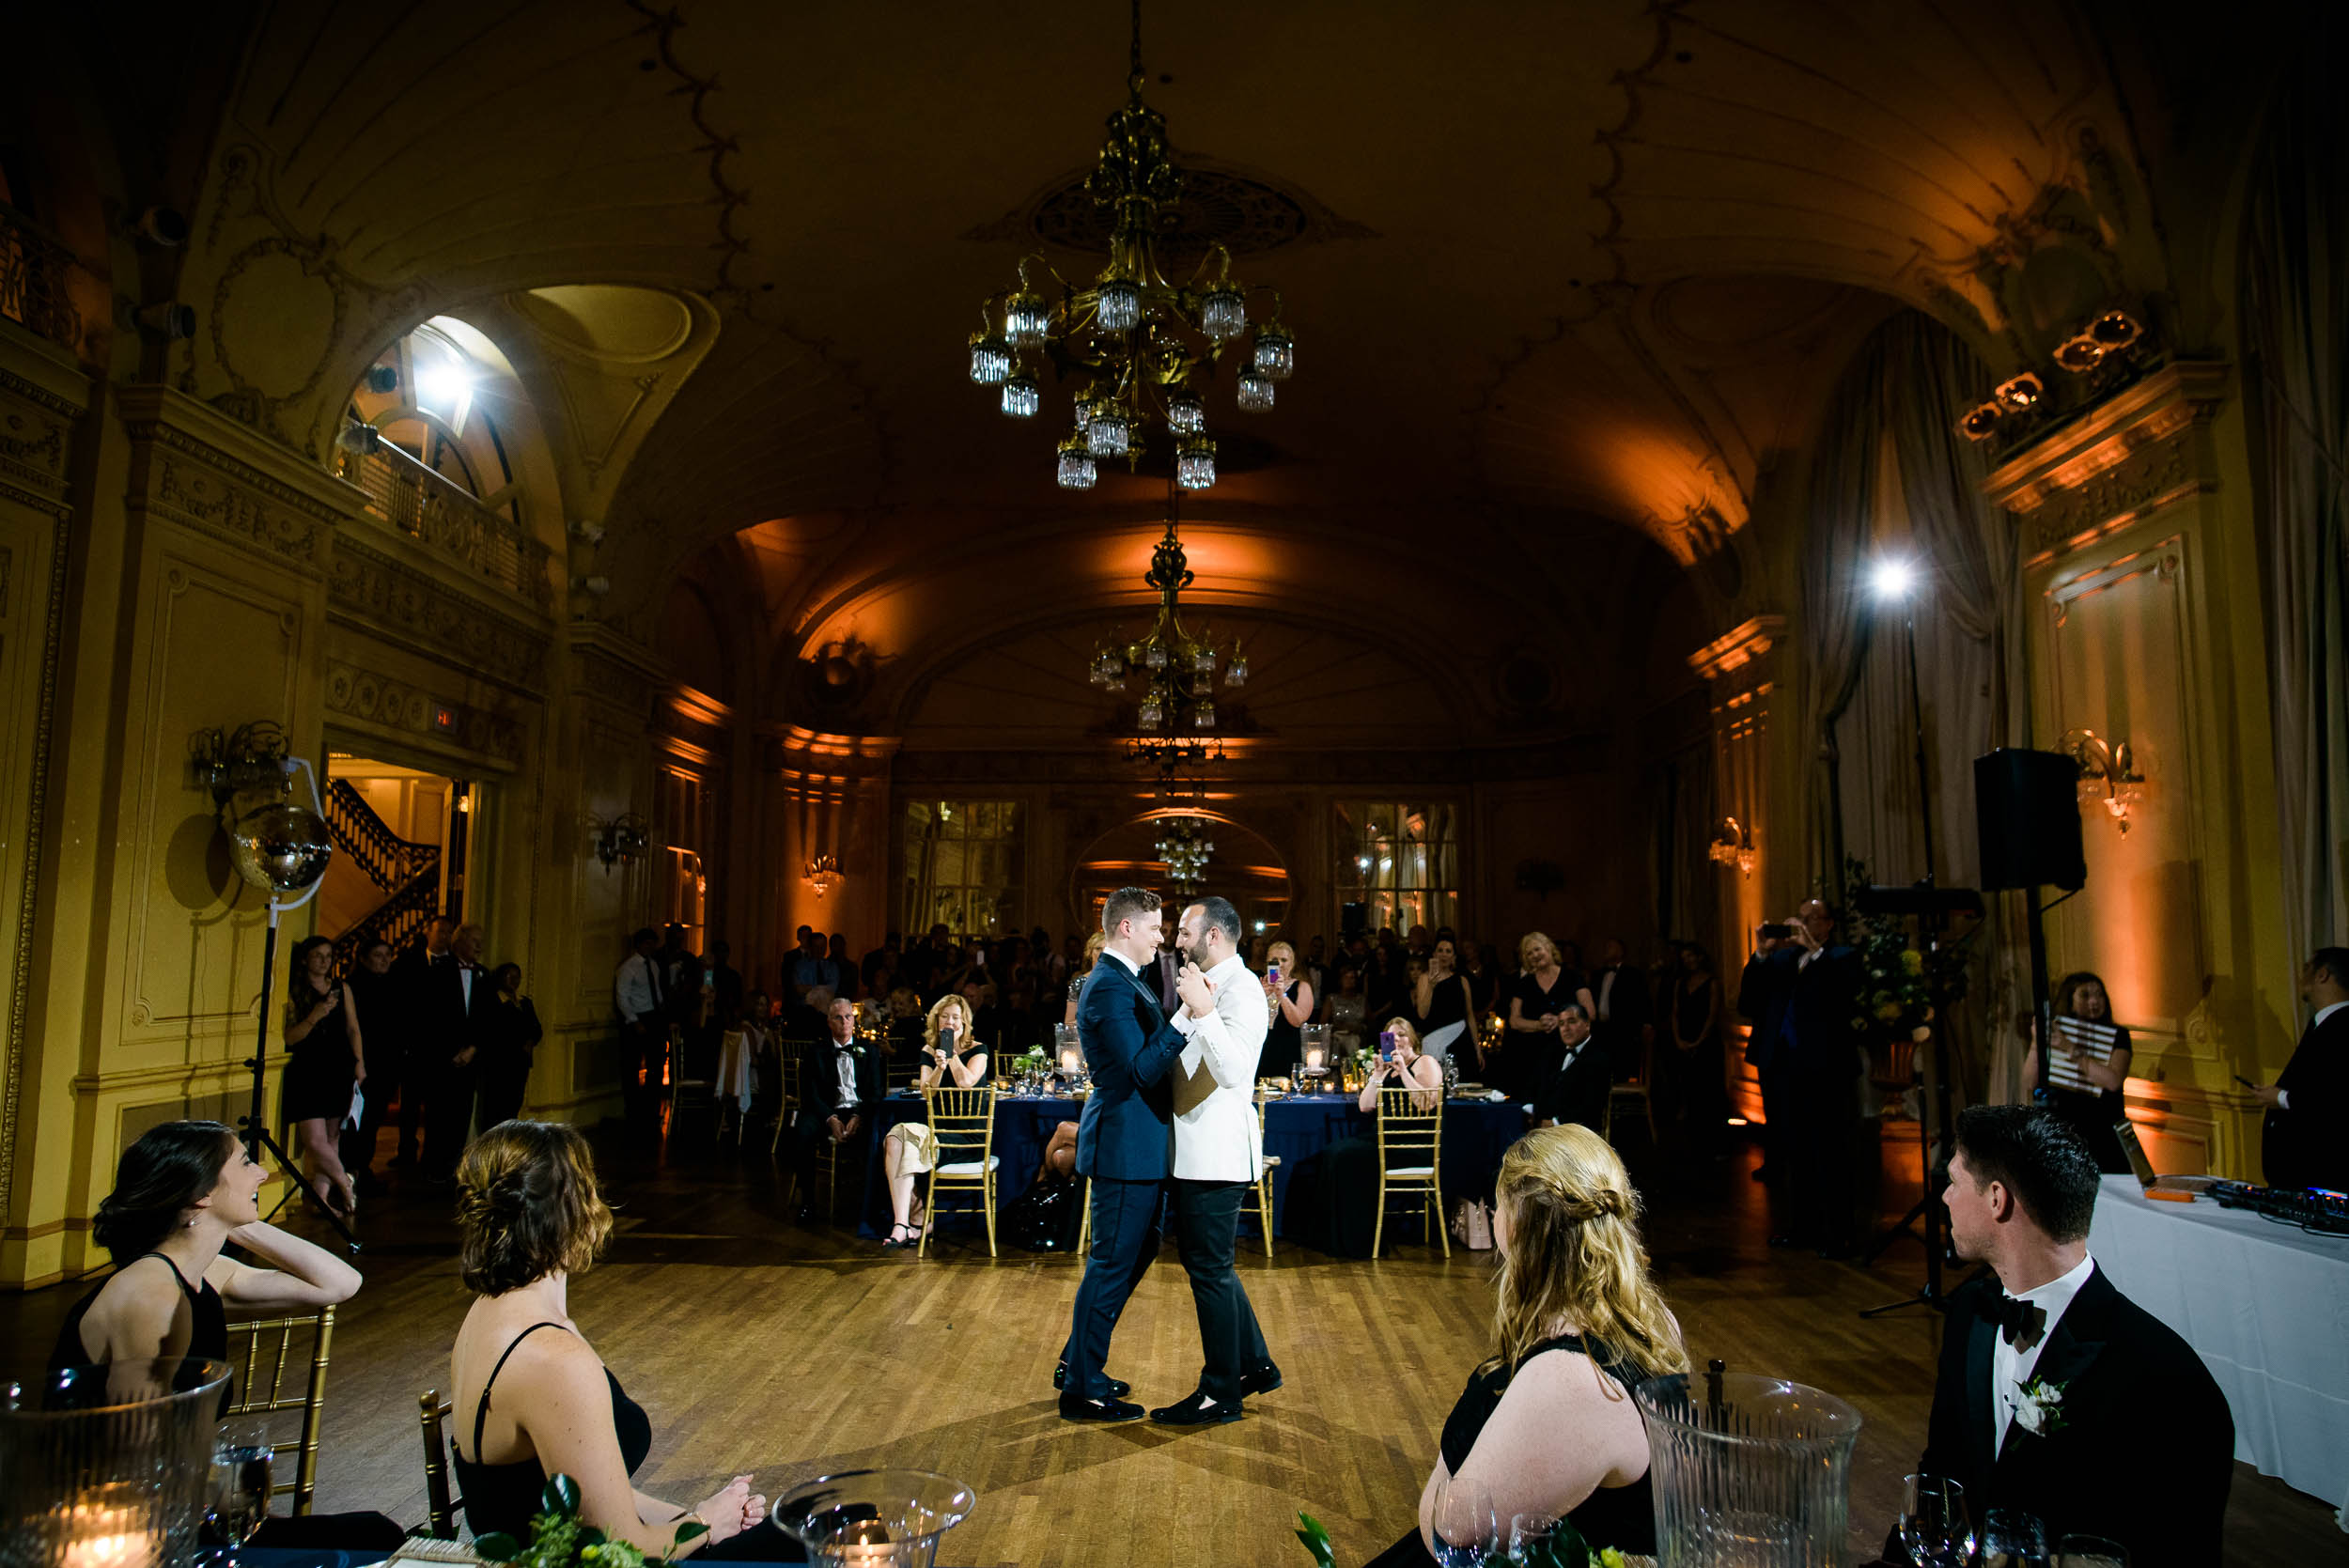 Grooms during first dance for luxurious fall wedding at the Chicago Symphony Center captured by J. Brown Photography. See more wedding ideas at jbrownphotography.com!